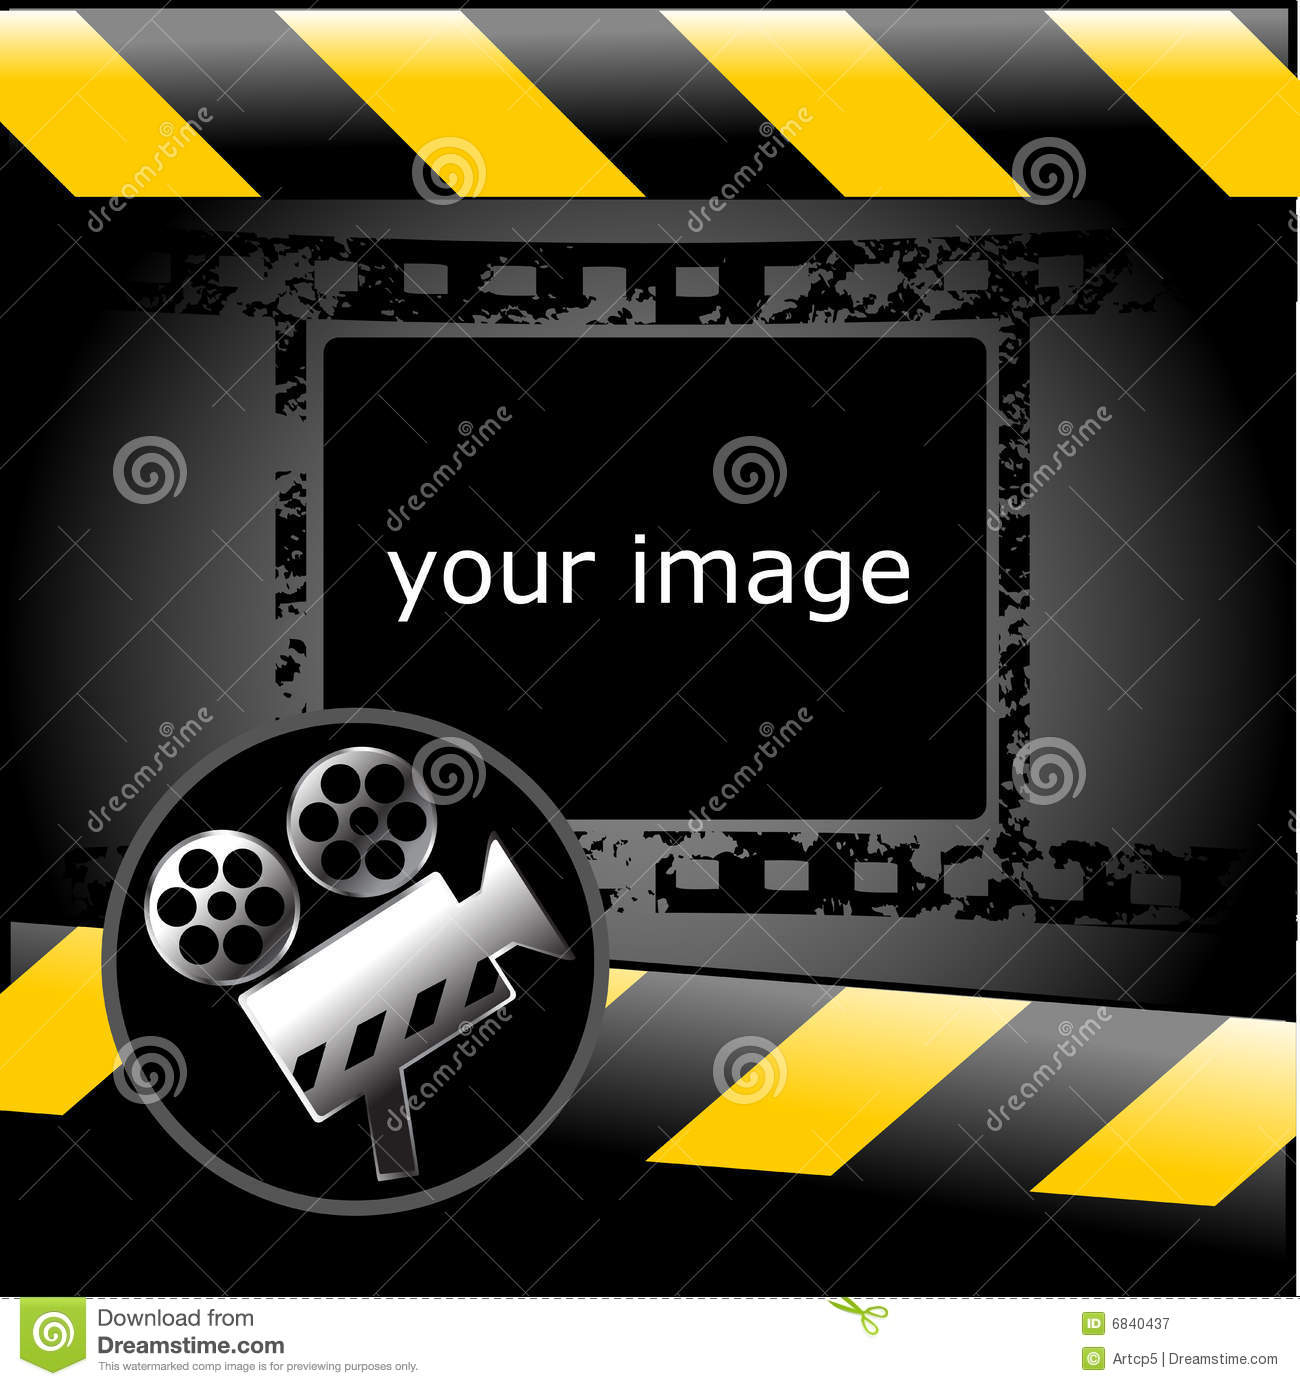 movie wallpaper stock vector. illustration of isolated - 6840437